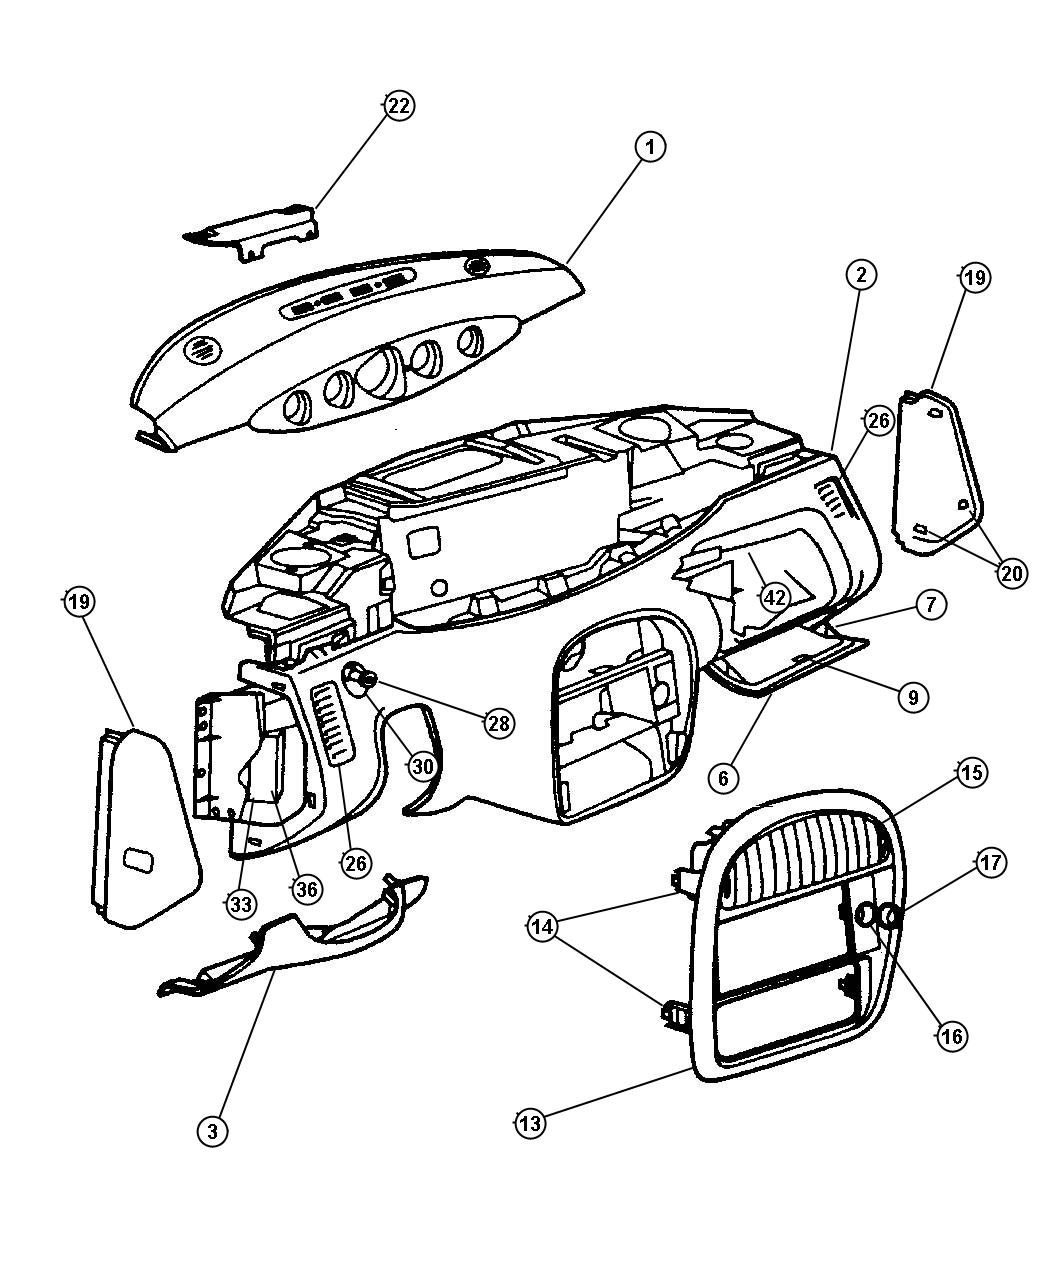 Plymouth Prowler Parts Diagram. Plymouth. Wiring Diagram